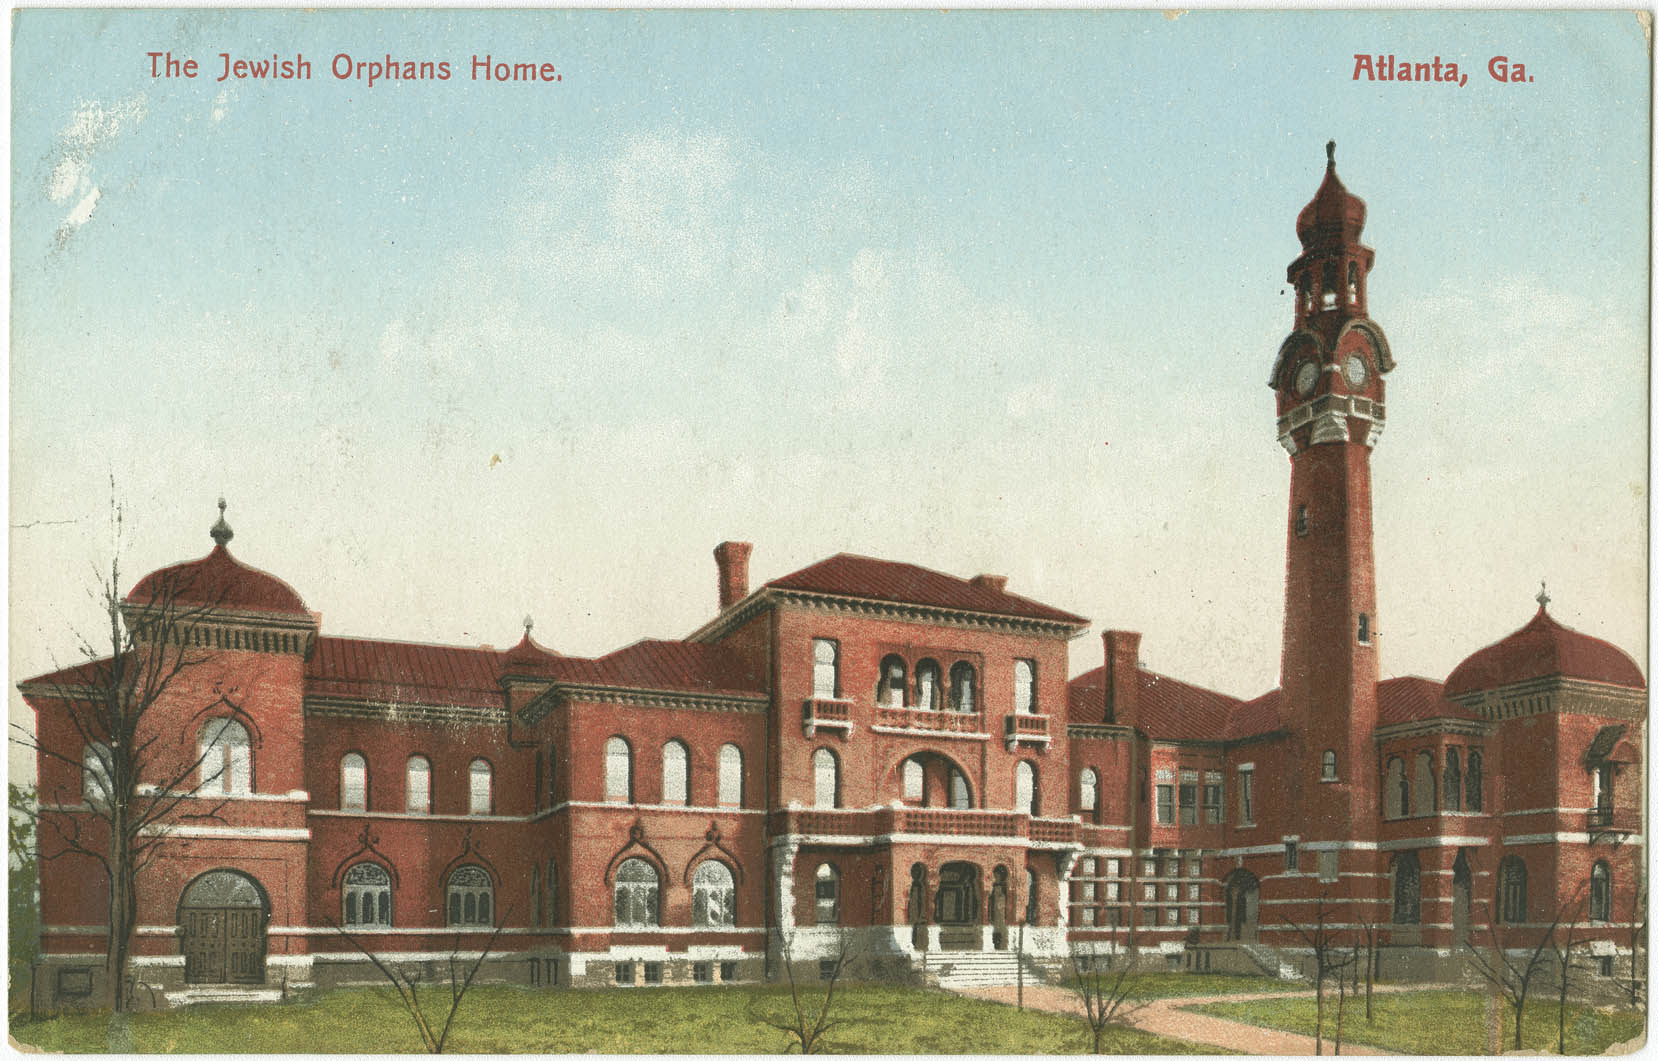 The Jewish Orphans Home. Atlanta, Ga.